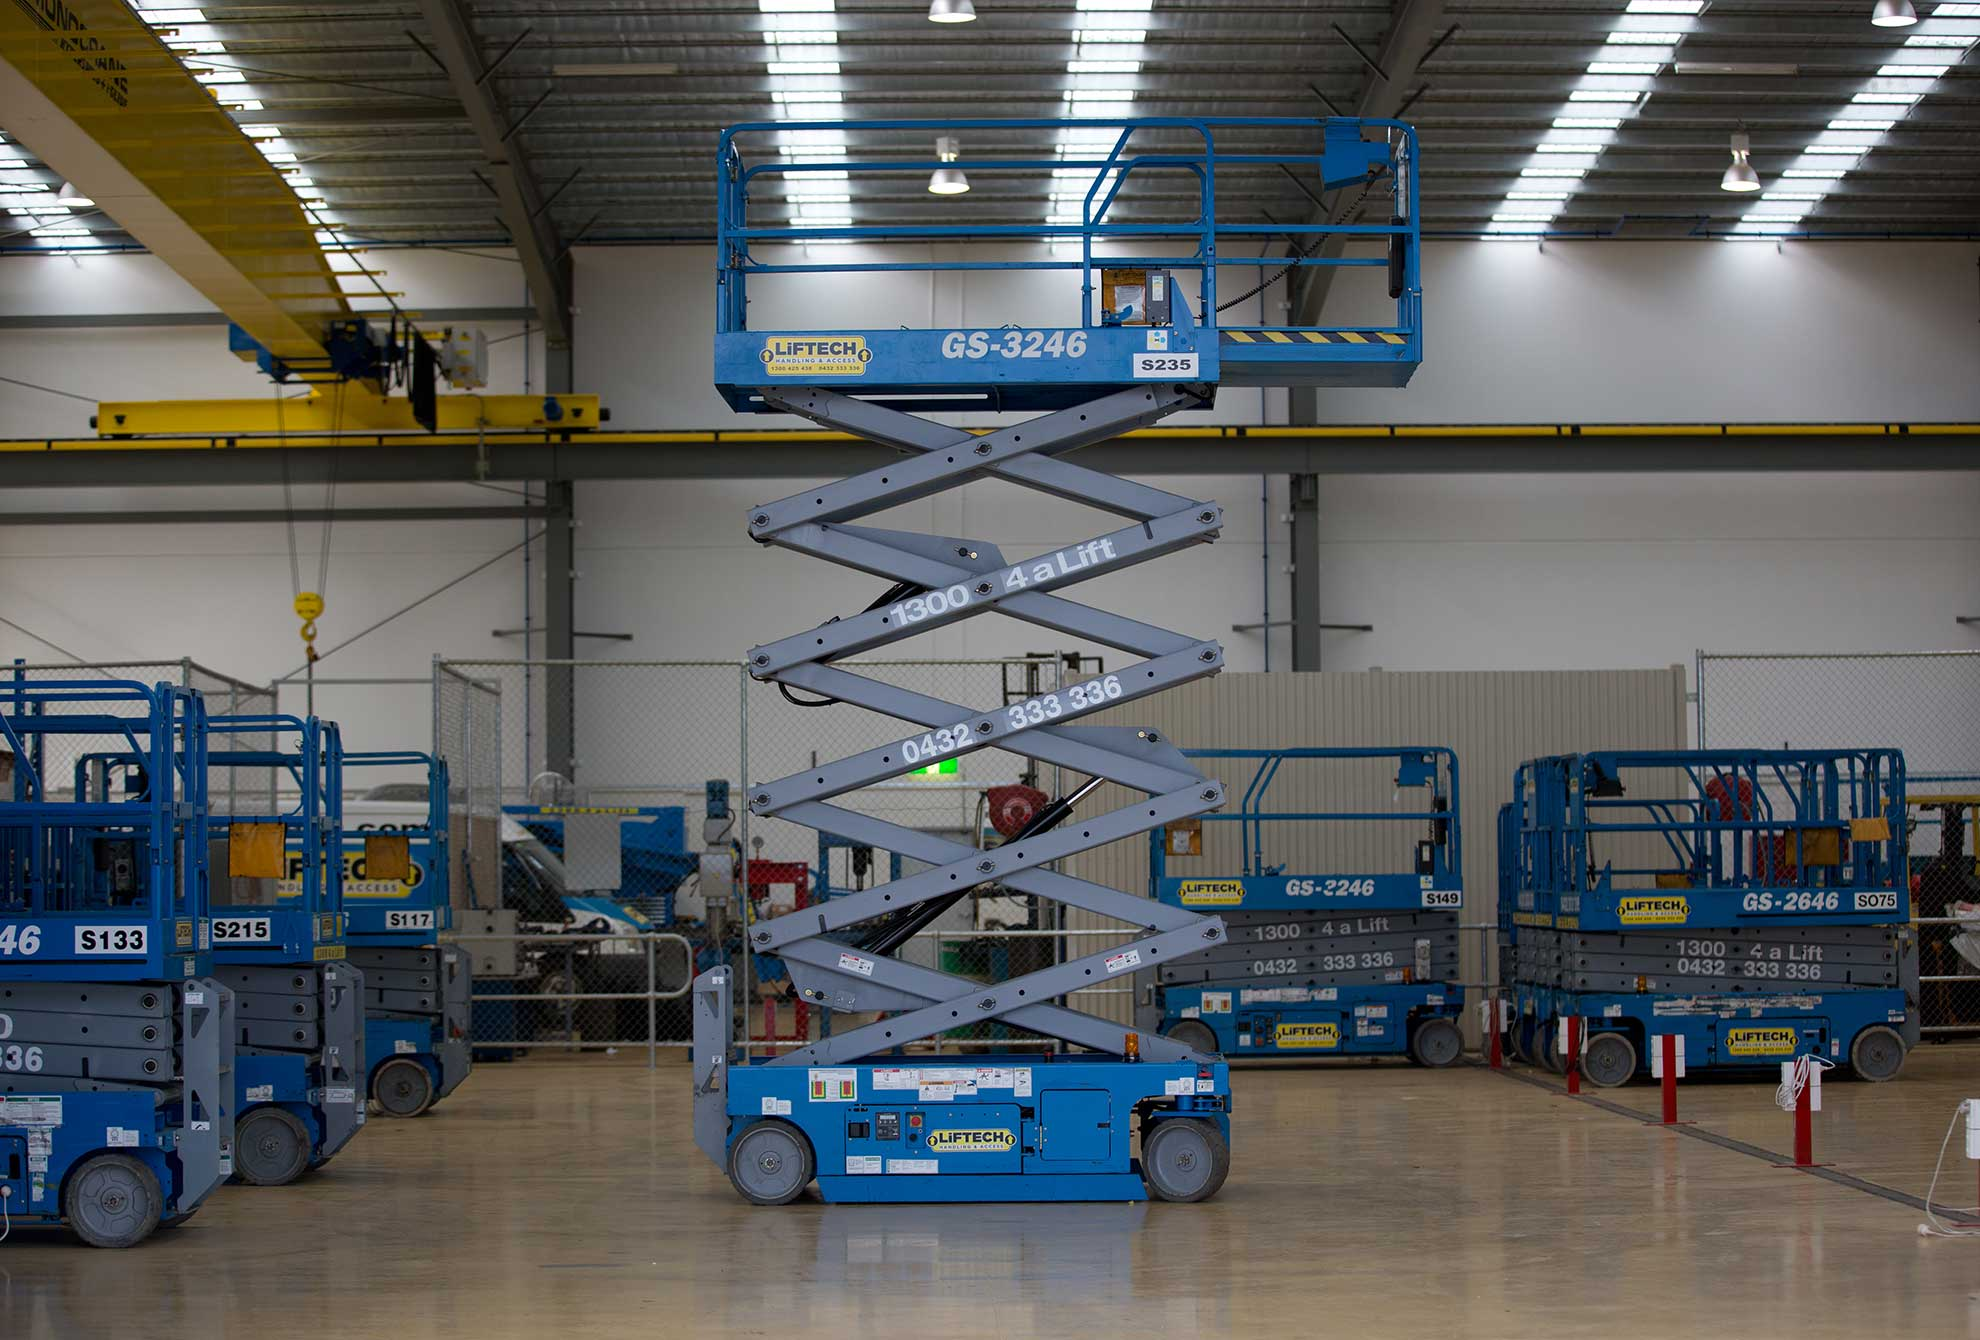 10m Standard Scissor Lift for Rental in Melbourne